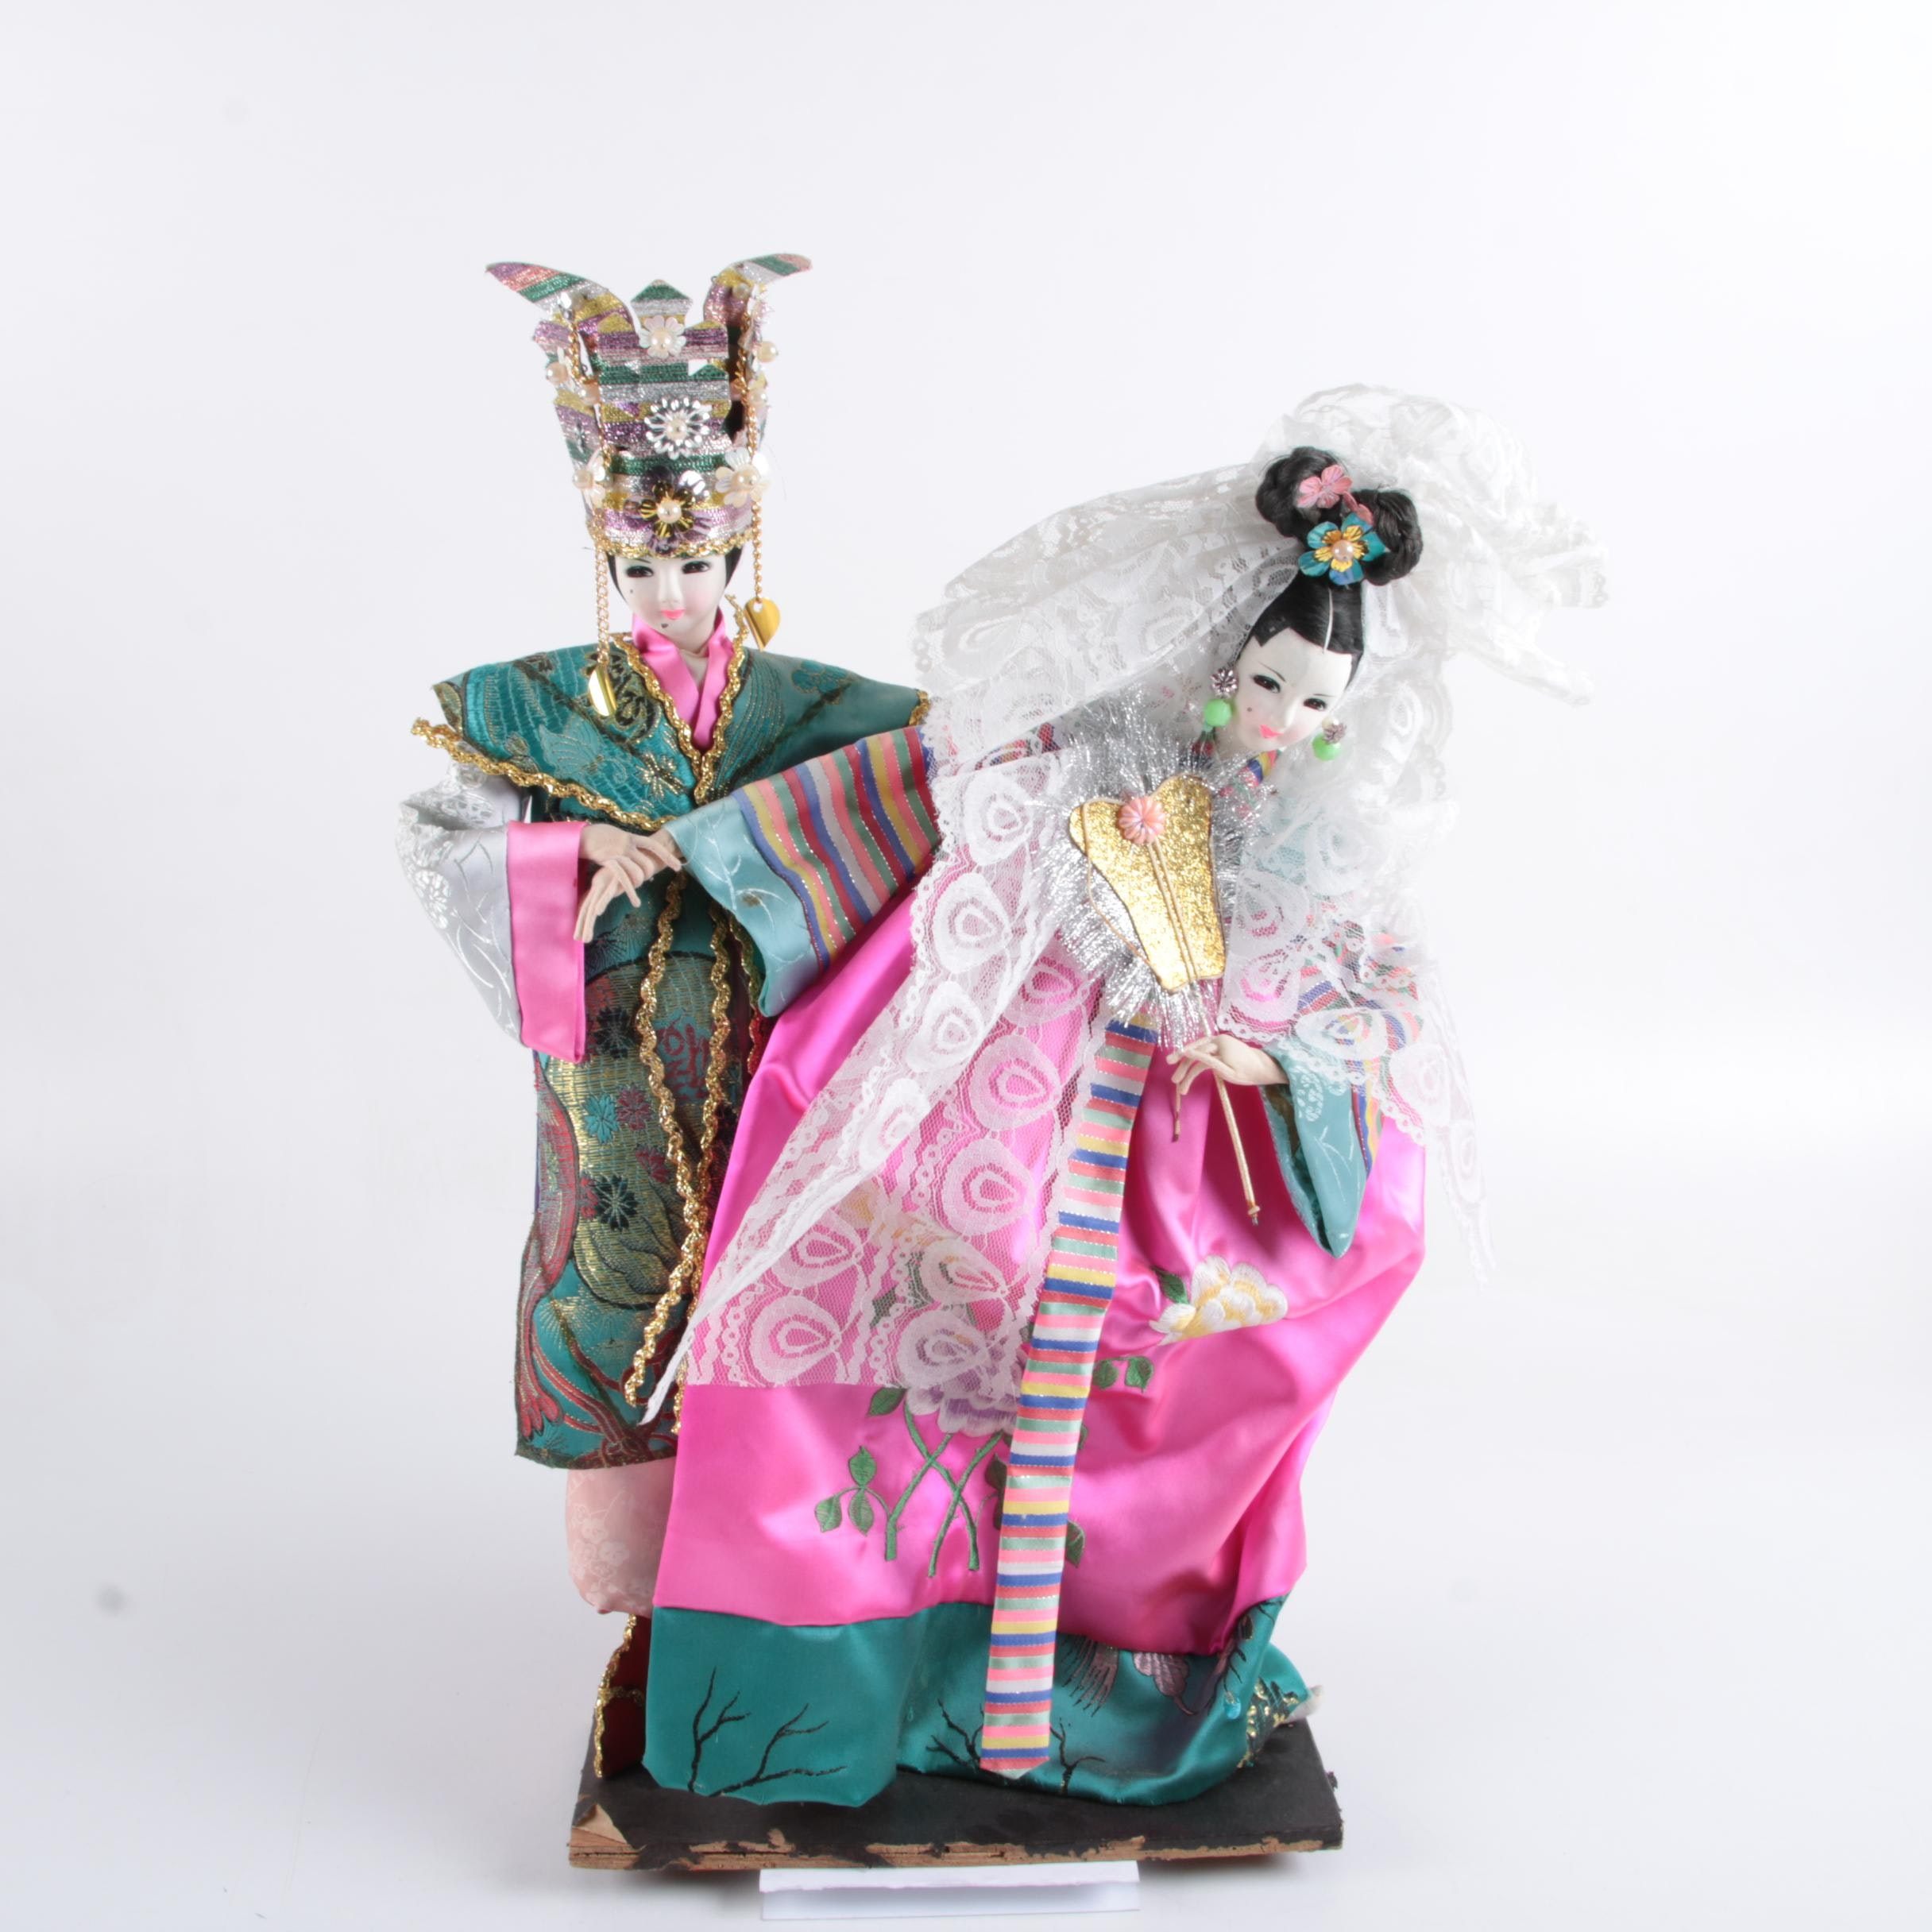 Traditional Korean Bride and Groom Stocking Face Dolls in Silk Hanbok Attire